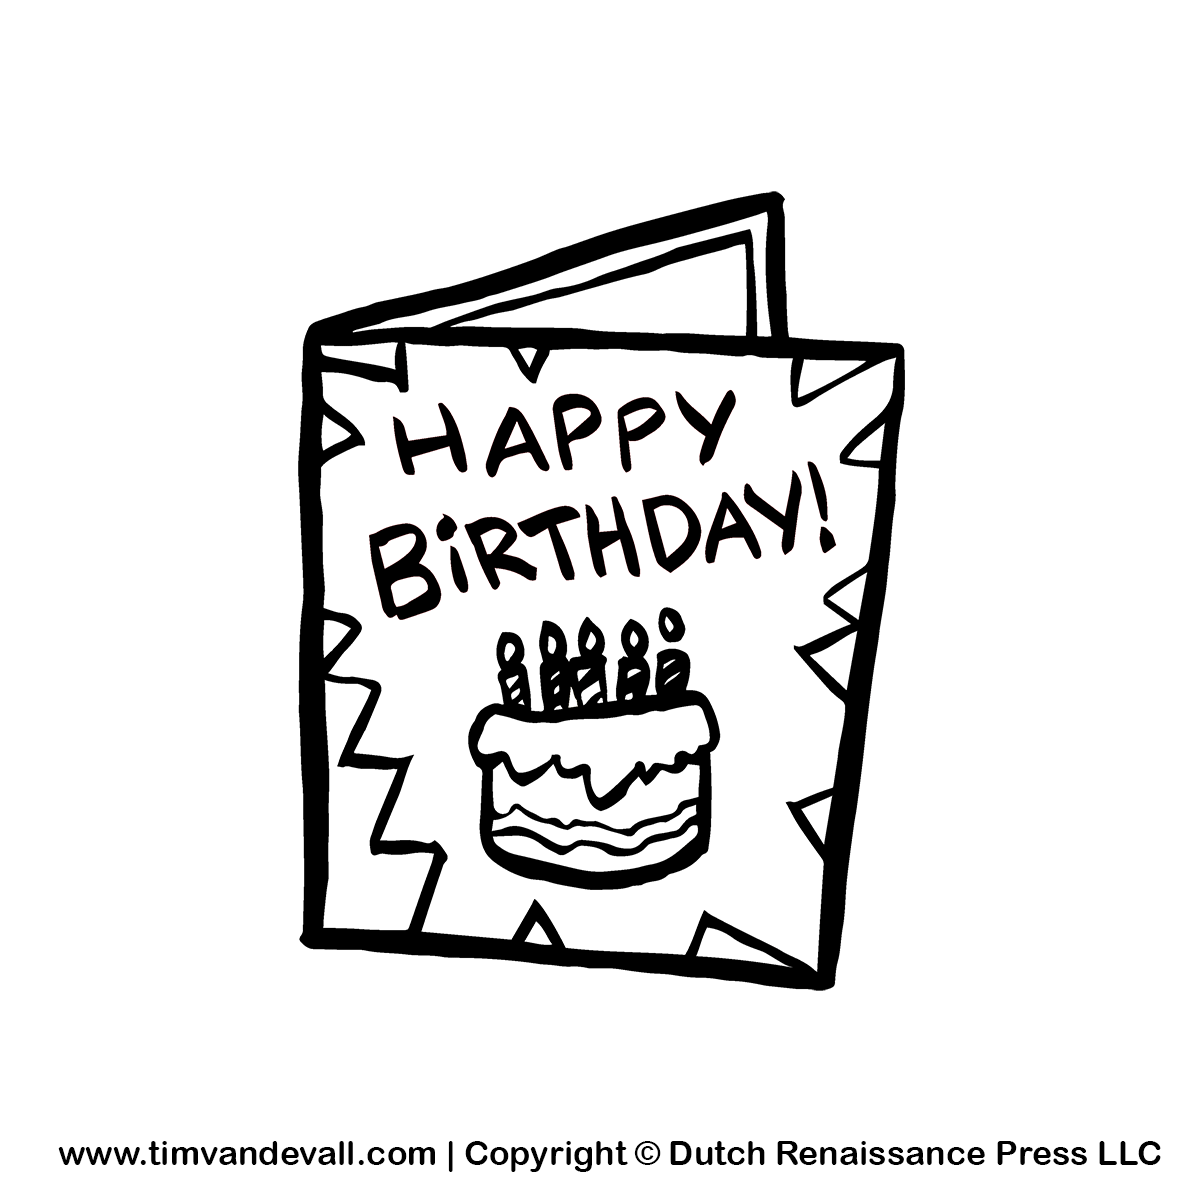 Greeting card clipart black and white 1 » Clipart Portal.